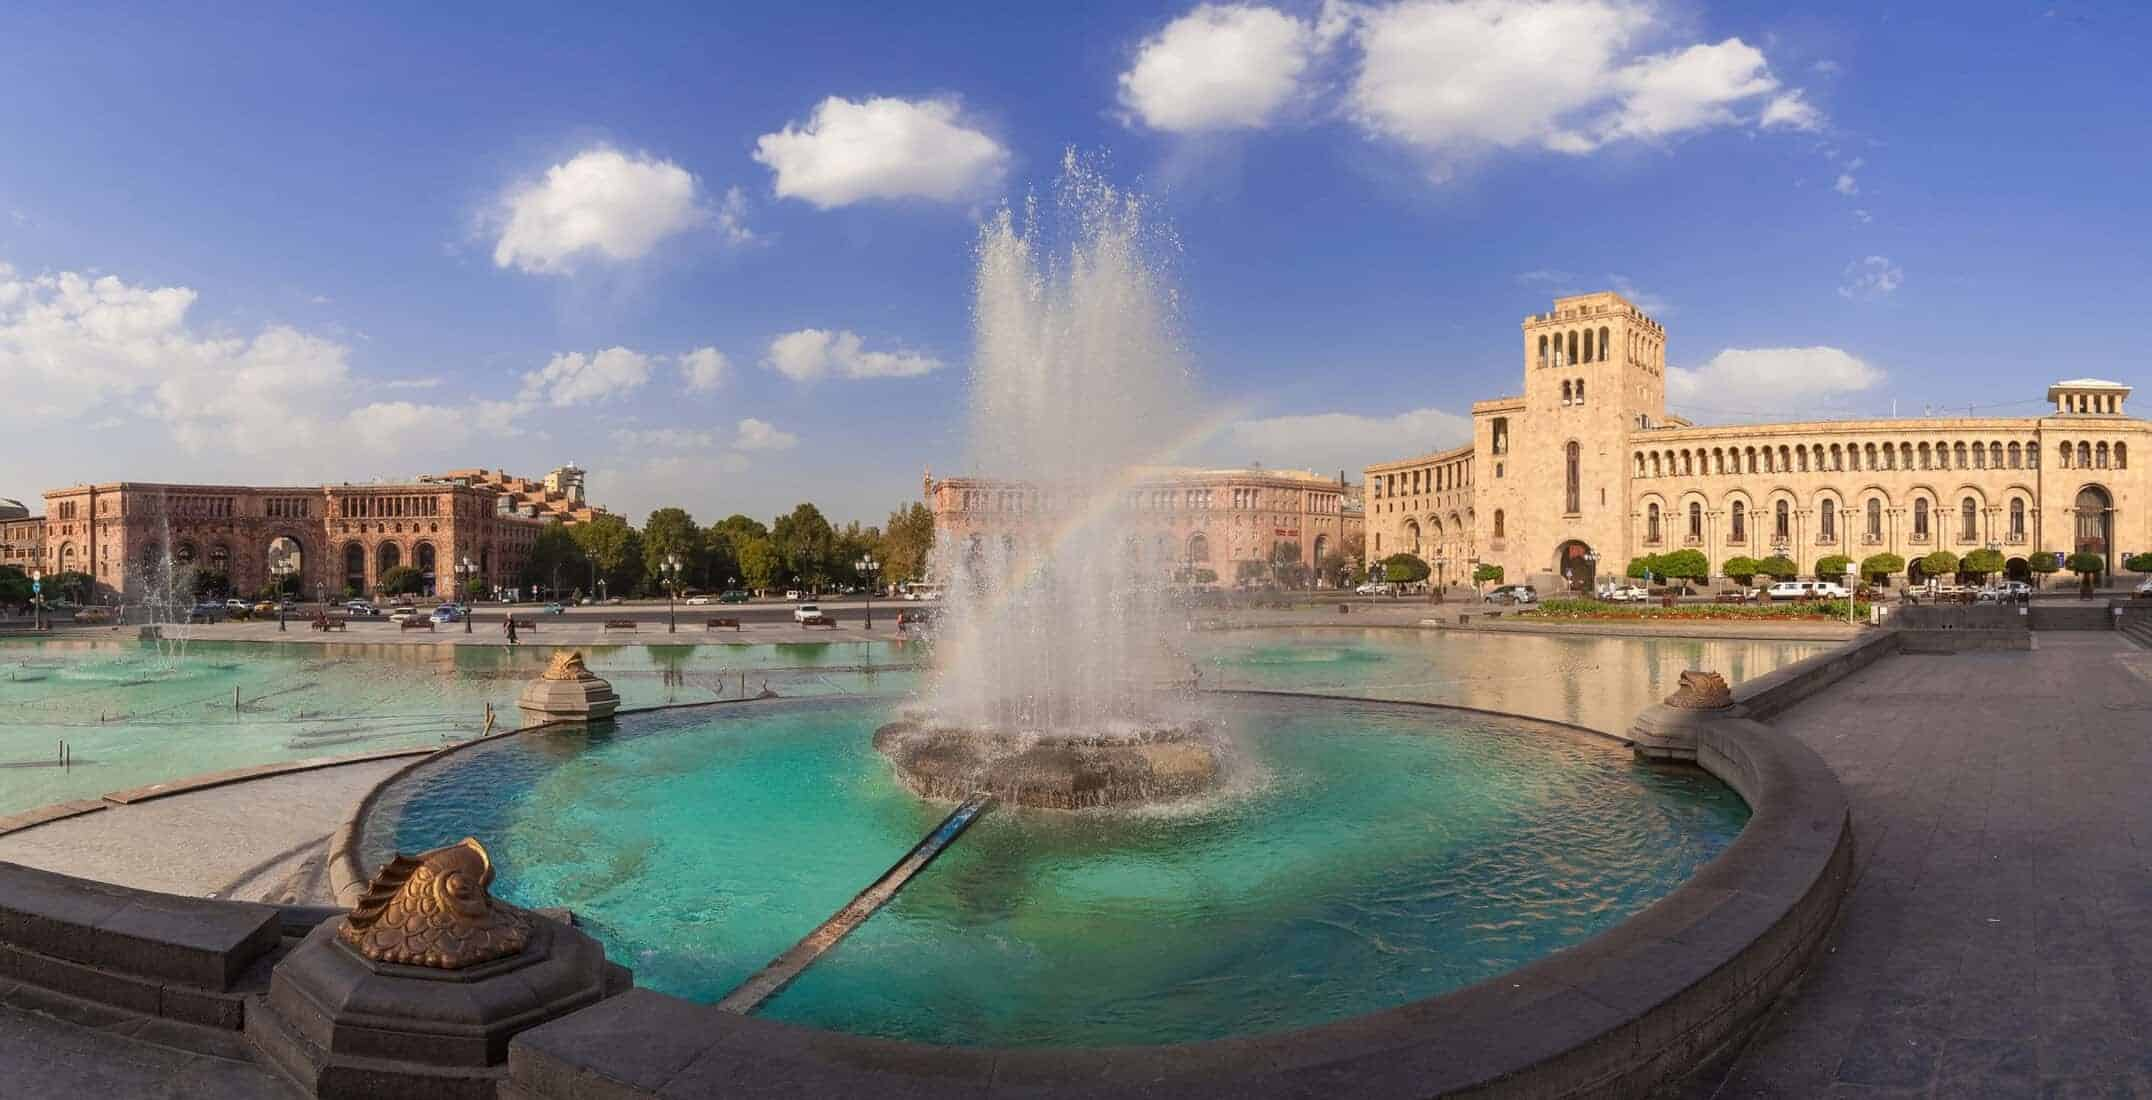 fountain-on-a-central-square-of-the-city-of-Yerevan-in-Armenia